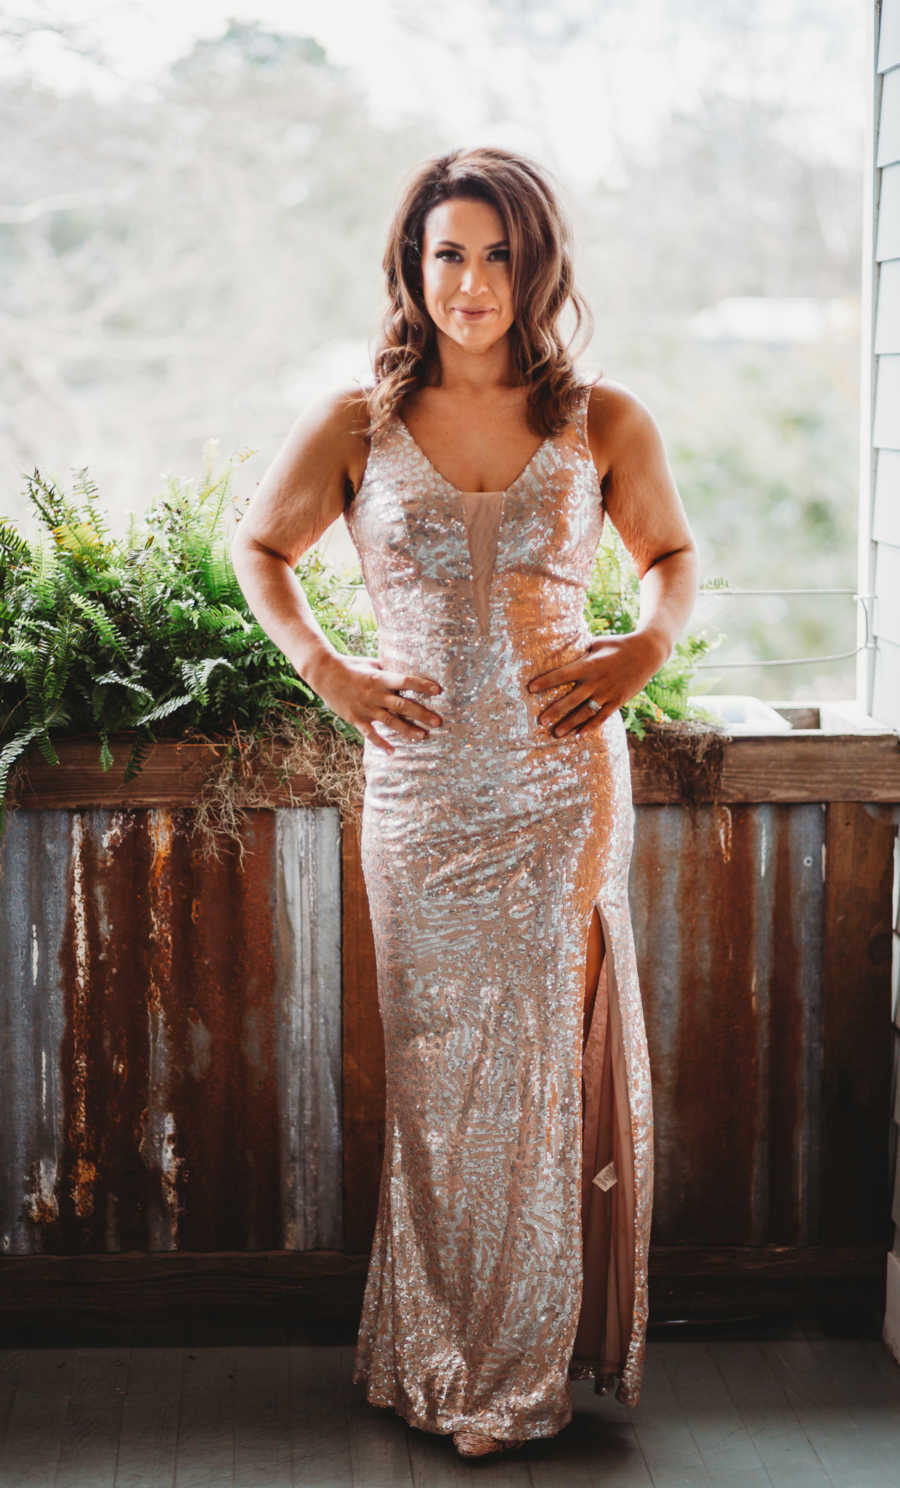 Woman takes photos in skin-tight sparkly gold dress, looking confident after weight loss journey